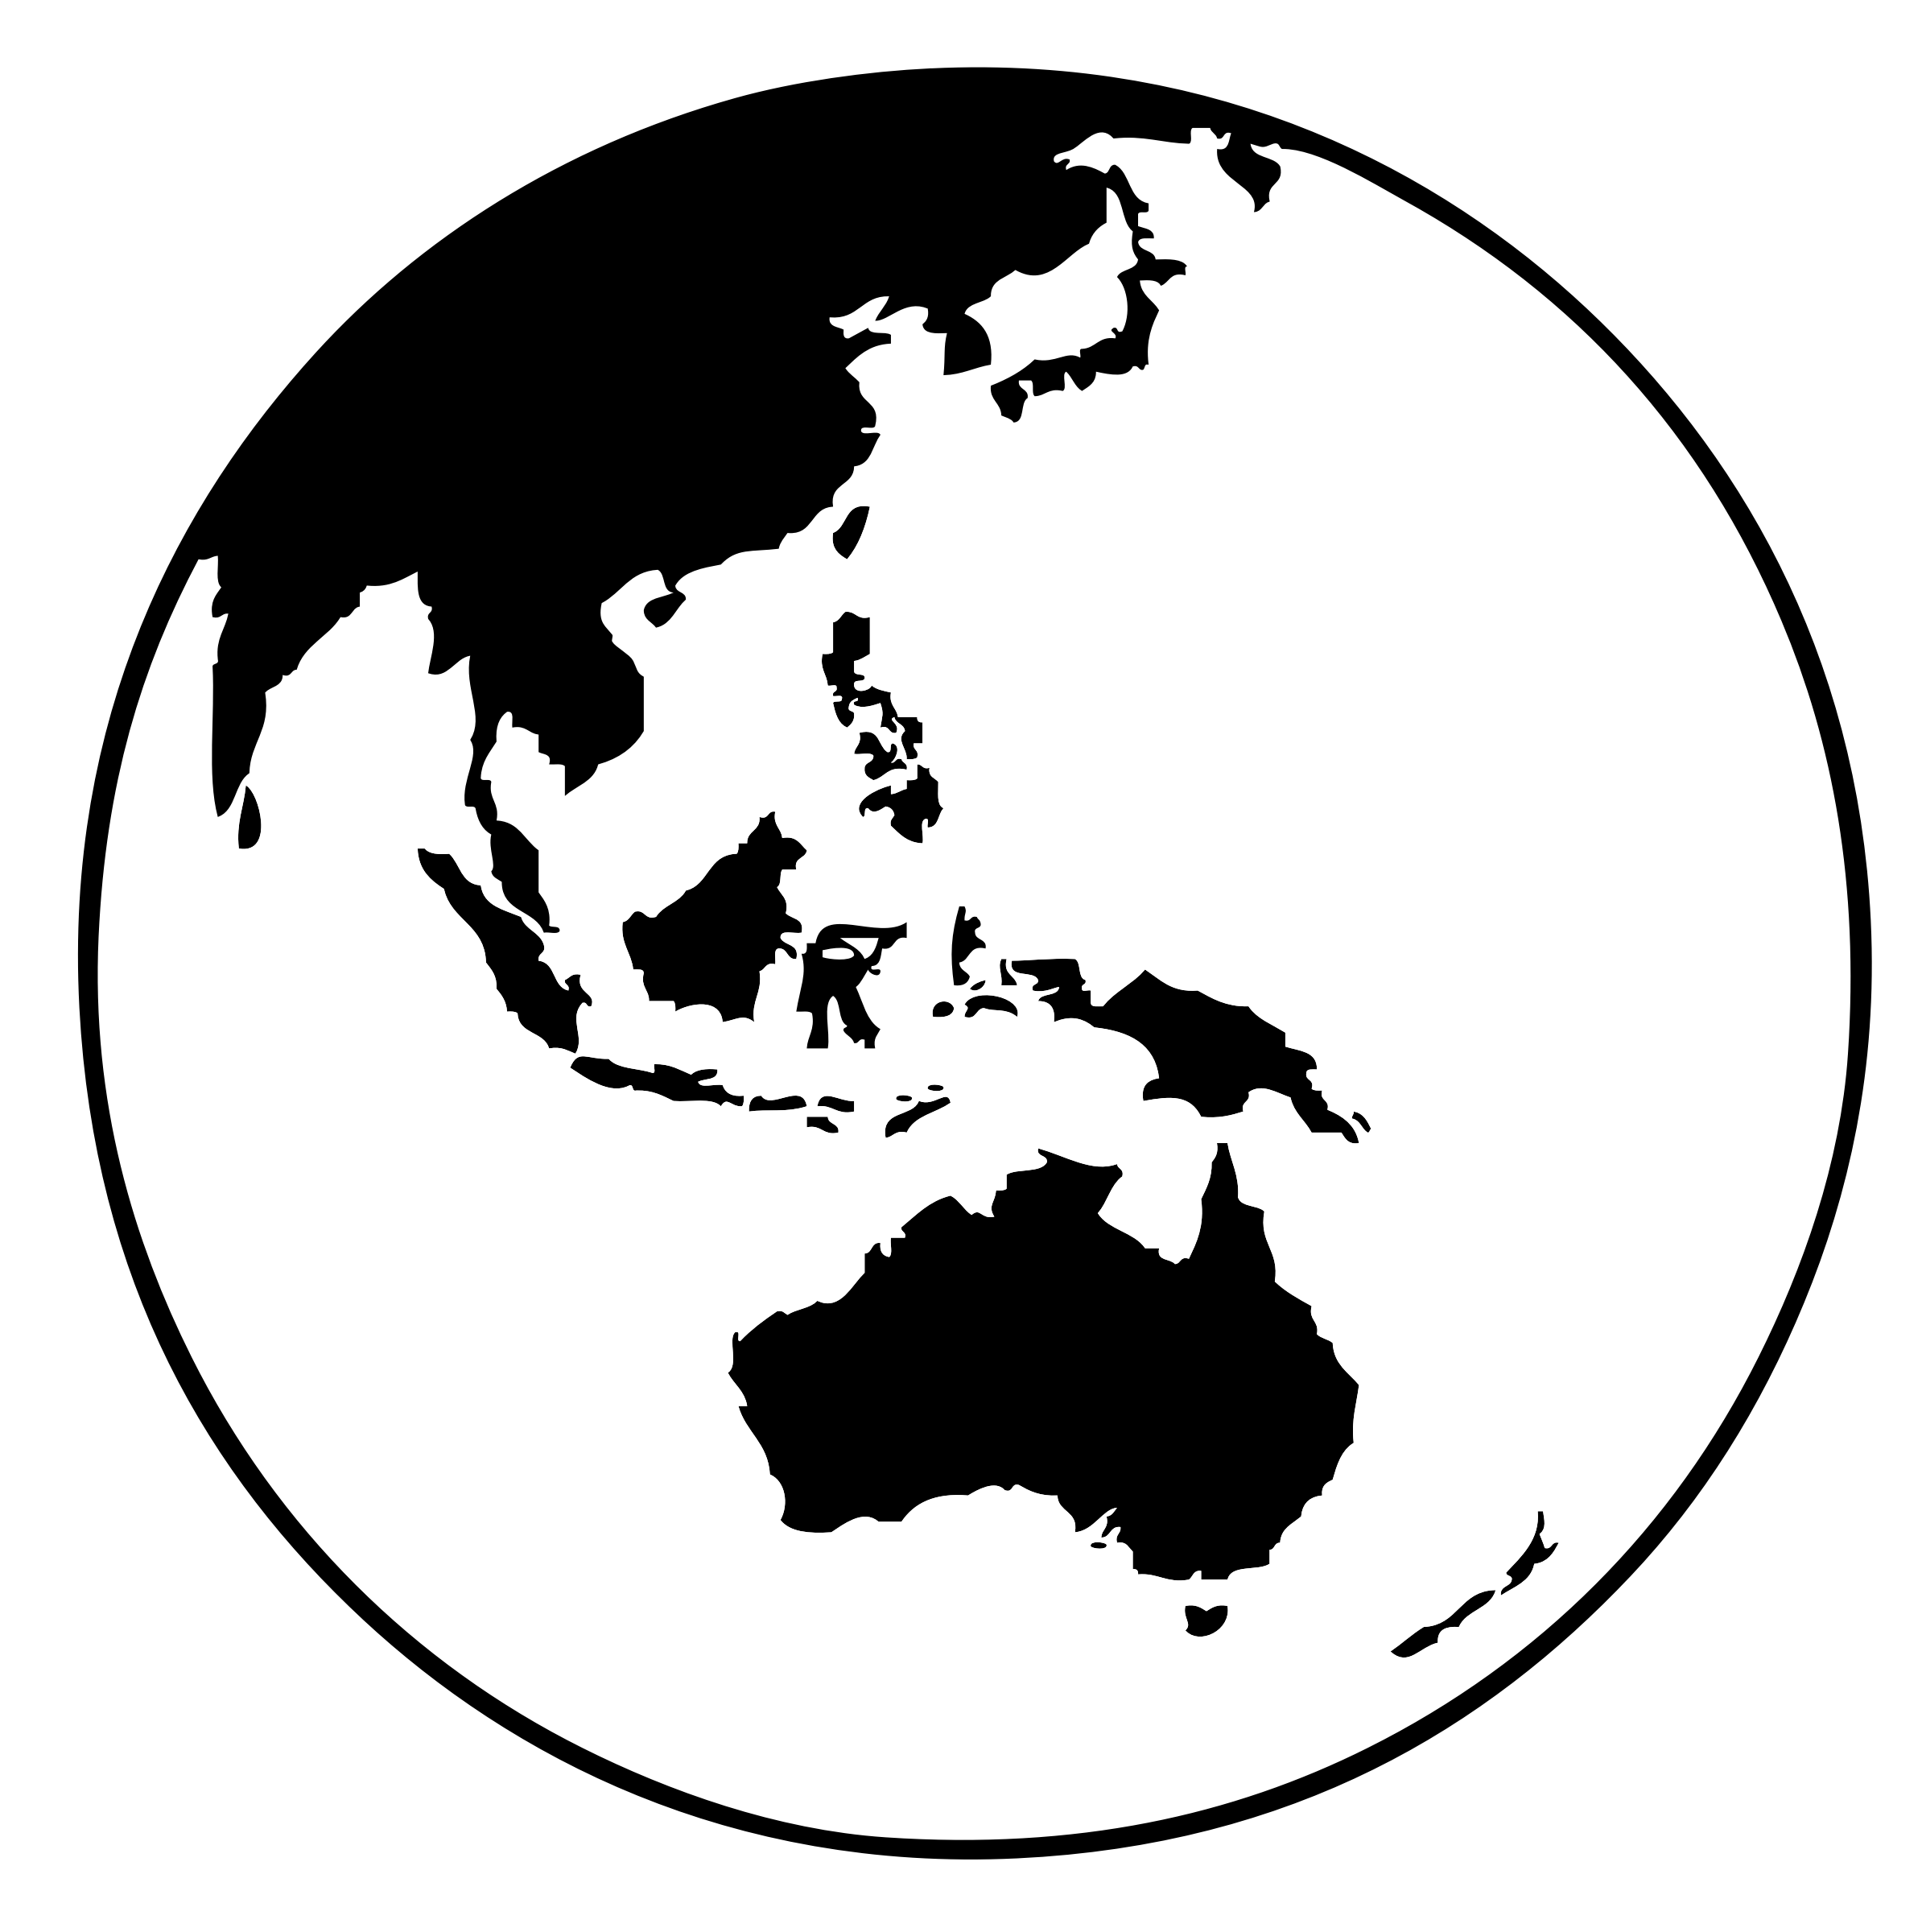 earth globe (oceania) by Lynx